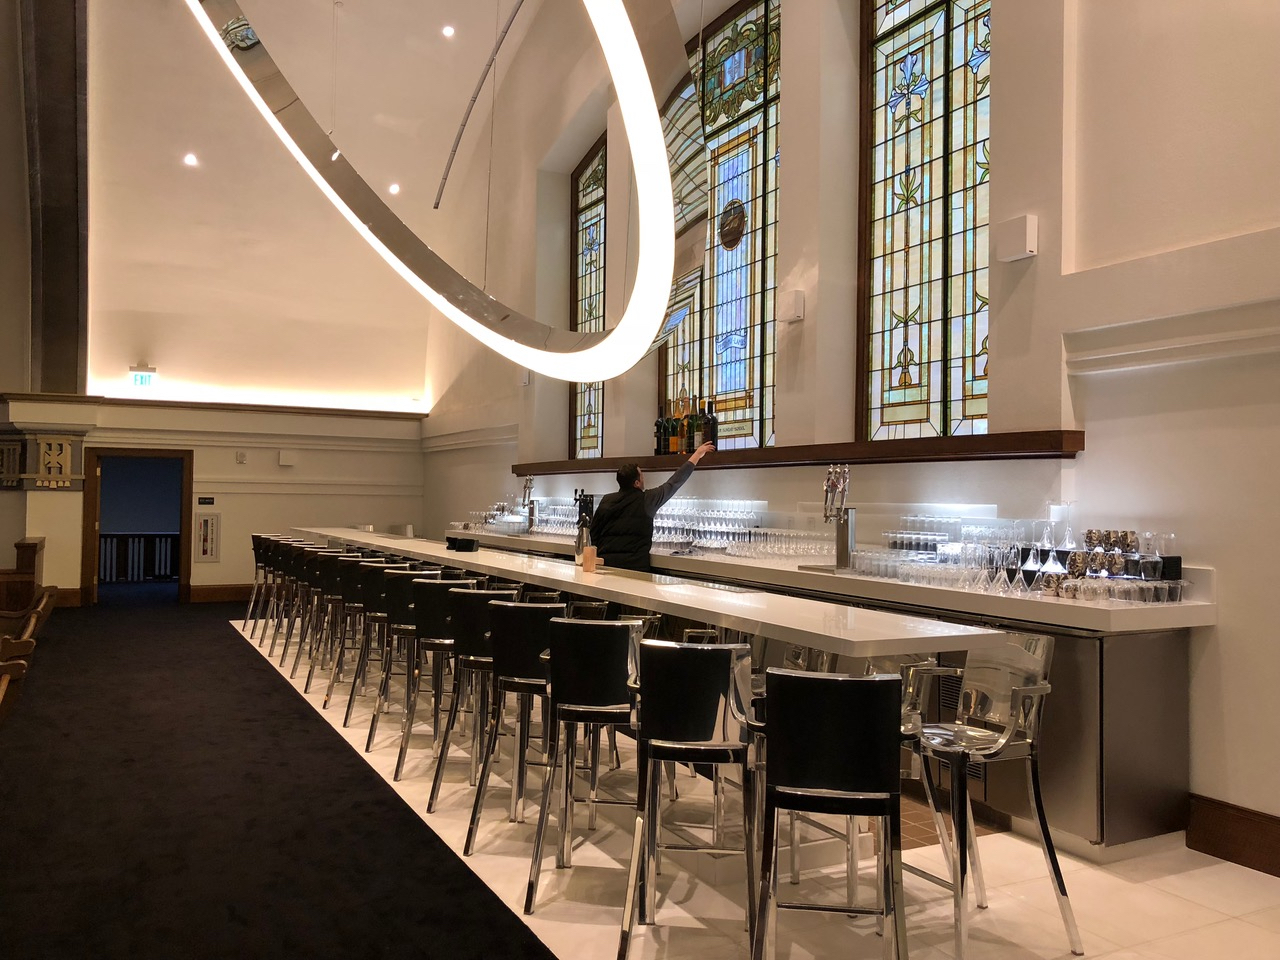 The Halo Bar in the Sanctuary